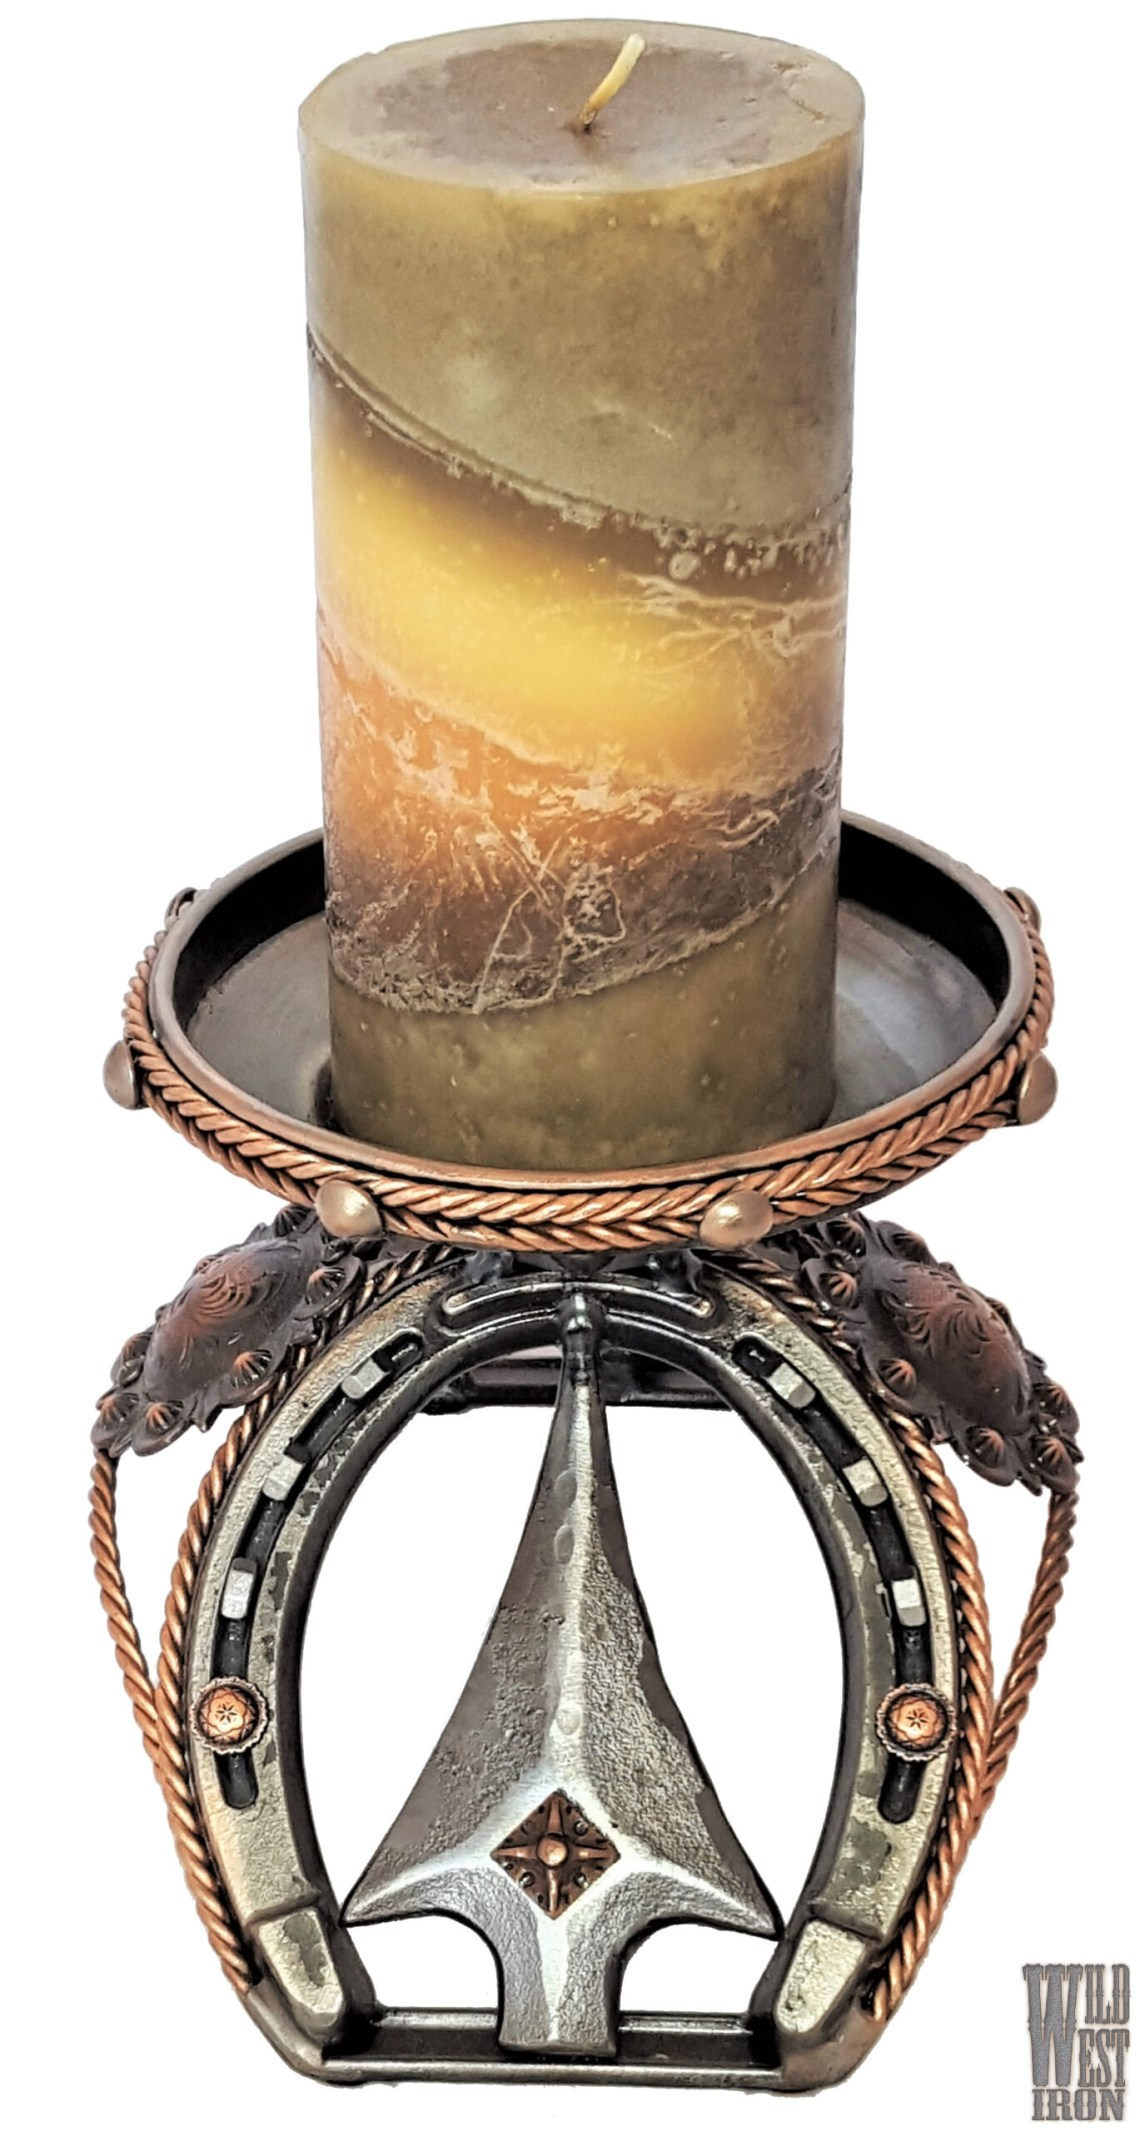 Arrowhead and Copper Candle Holder View Two